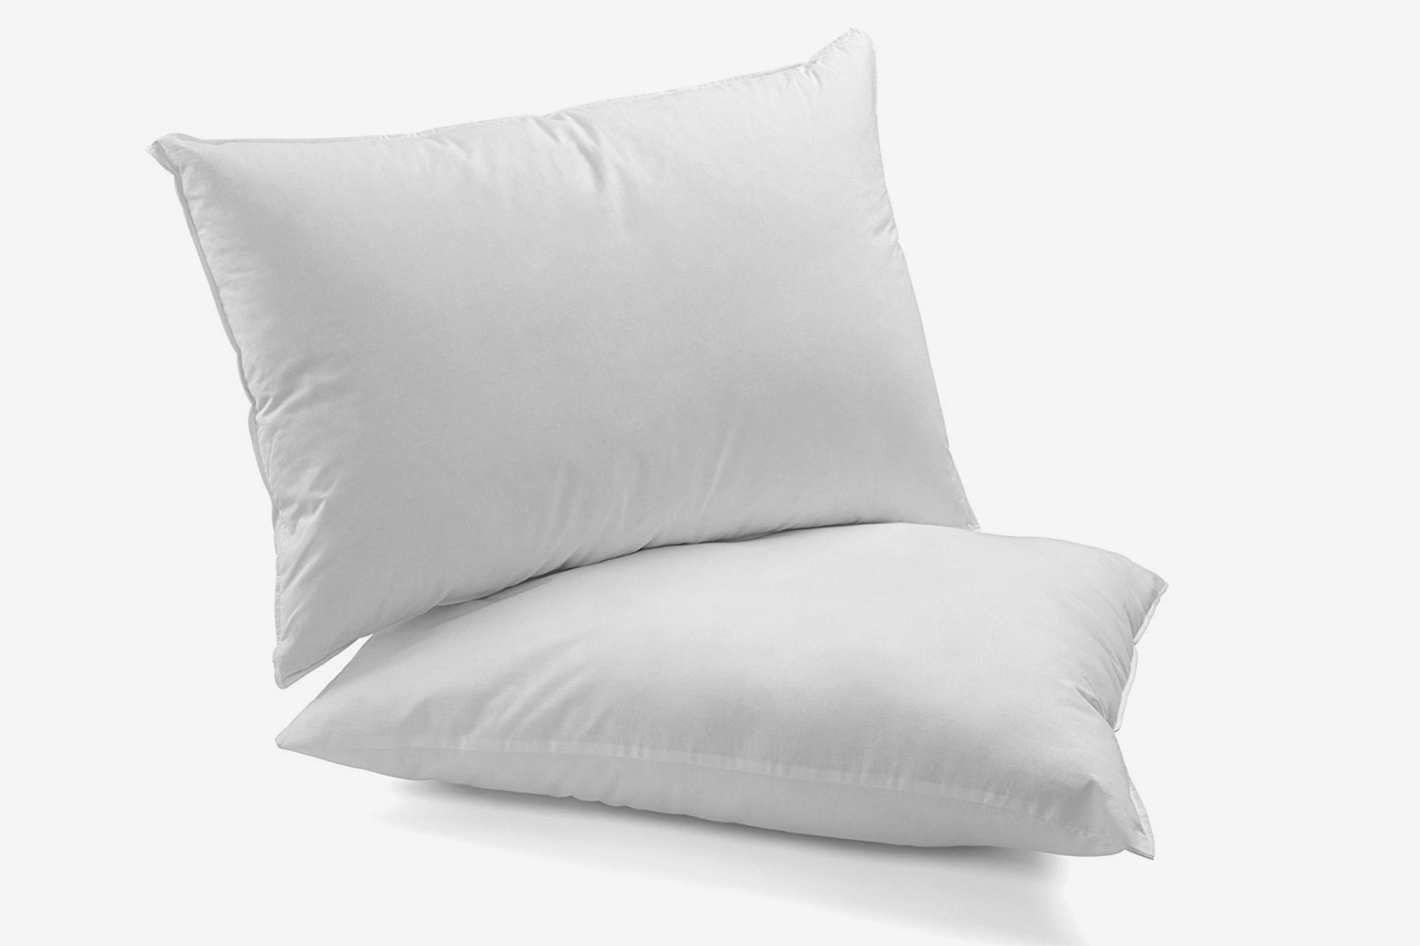 Pin by vps on pillow pinterest pillows bed pillows and